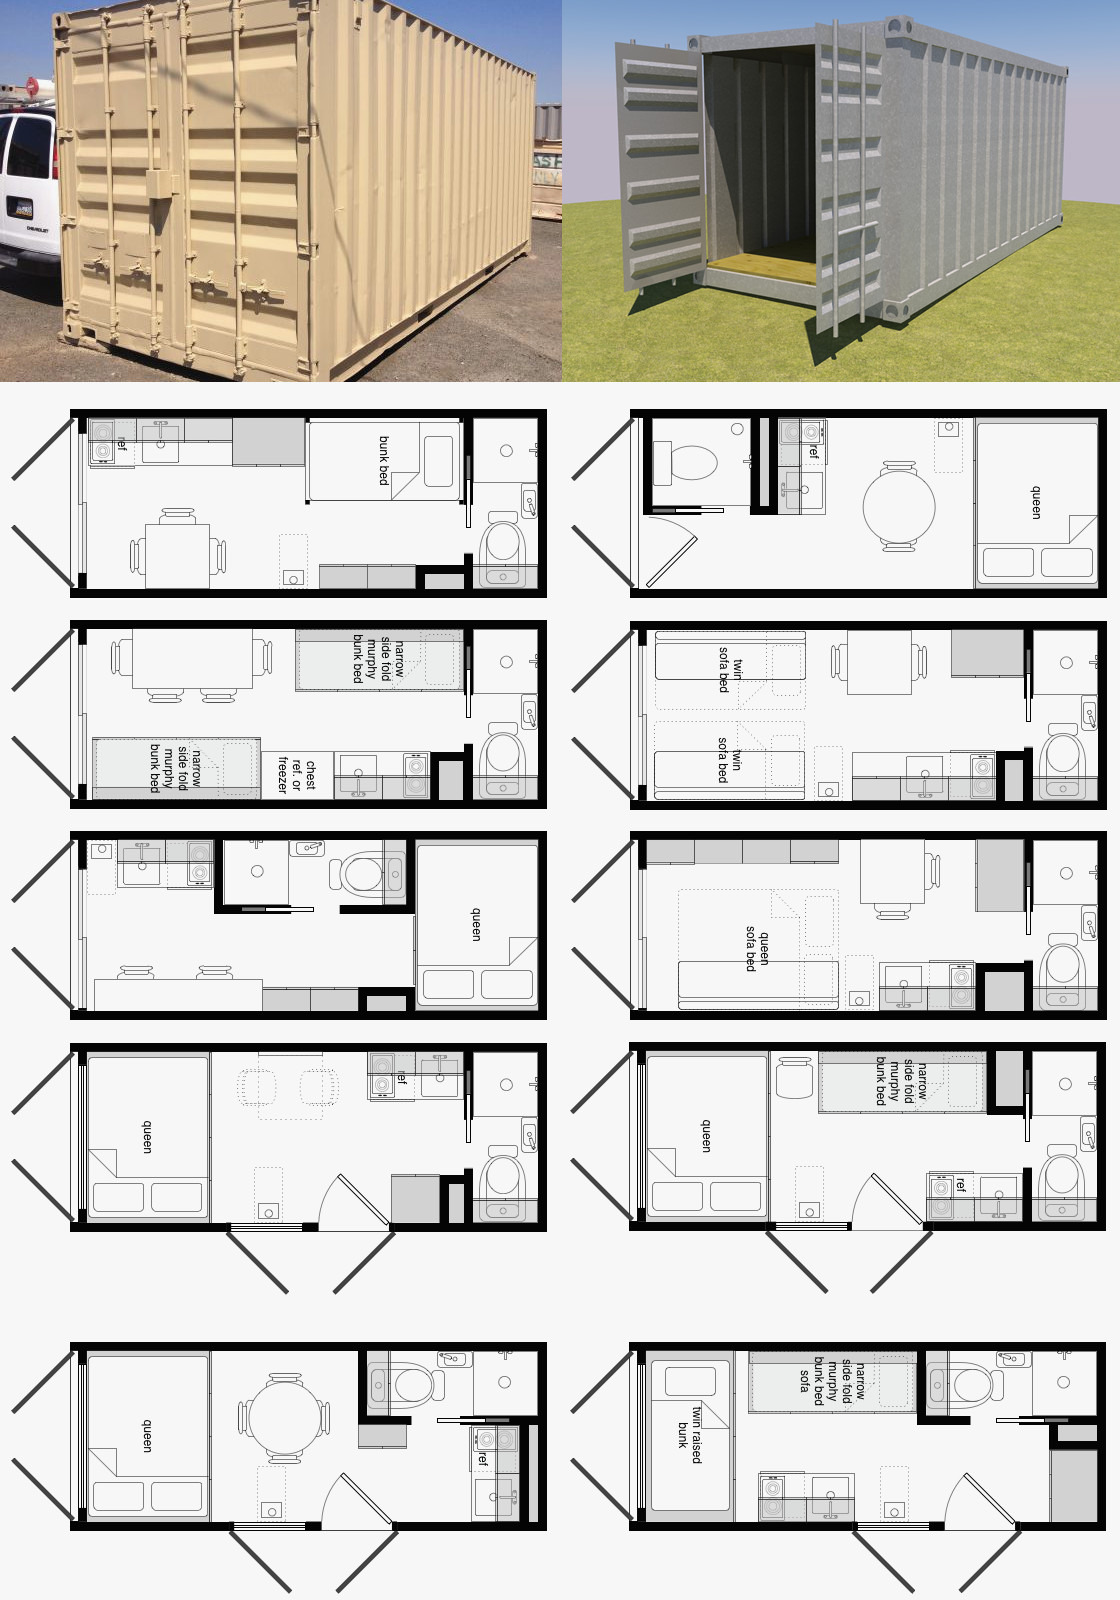 shipping container house plans pdf lovely shipping container home floor plans of shipping container house plans pdf